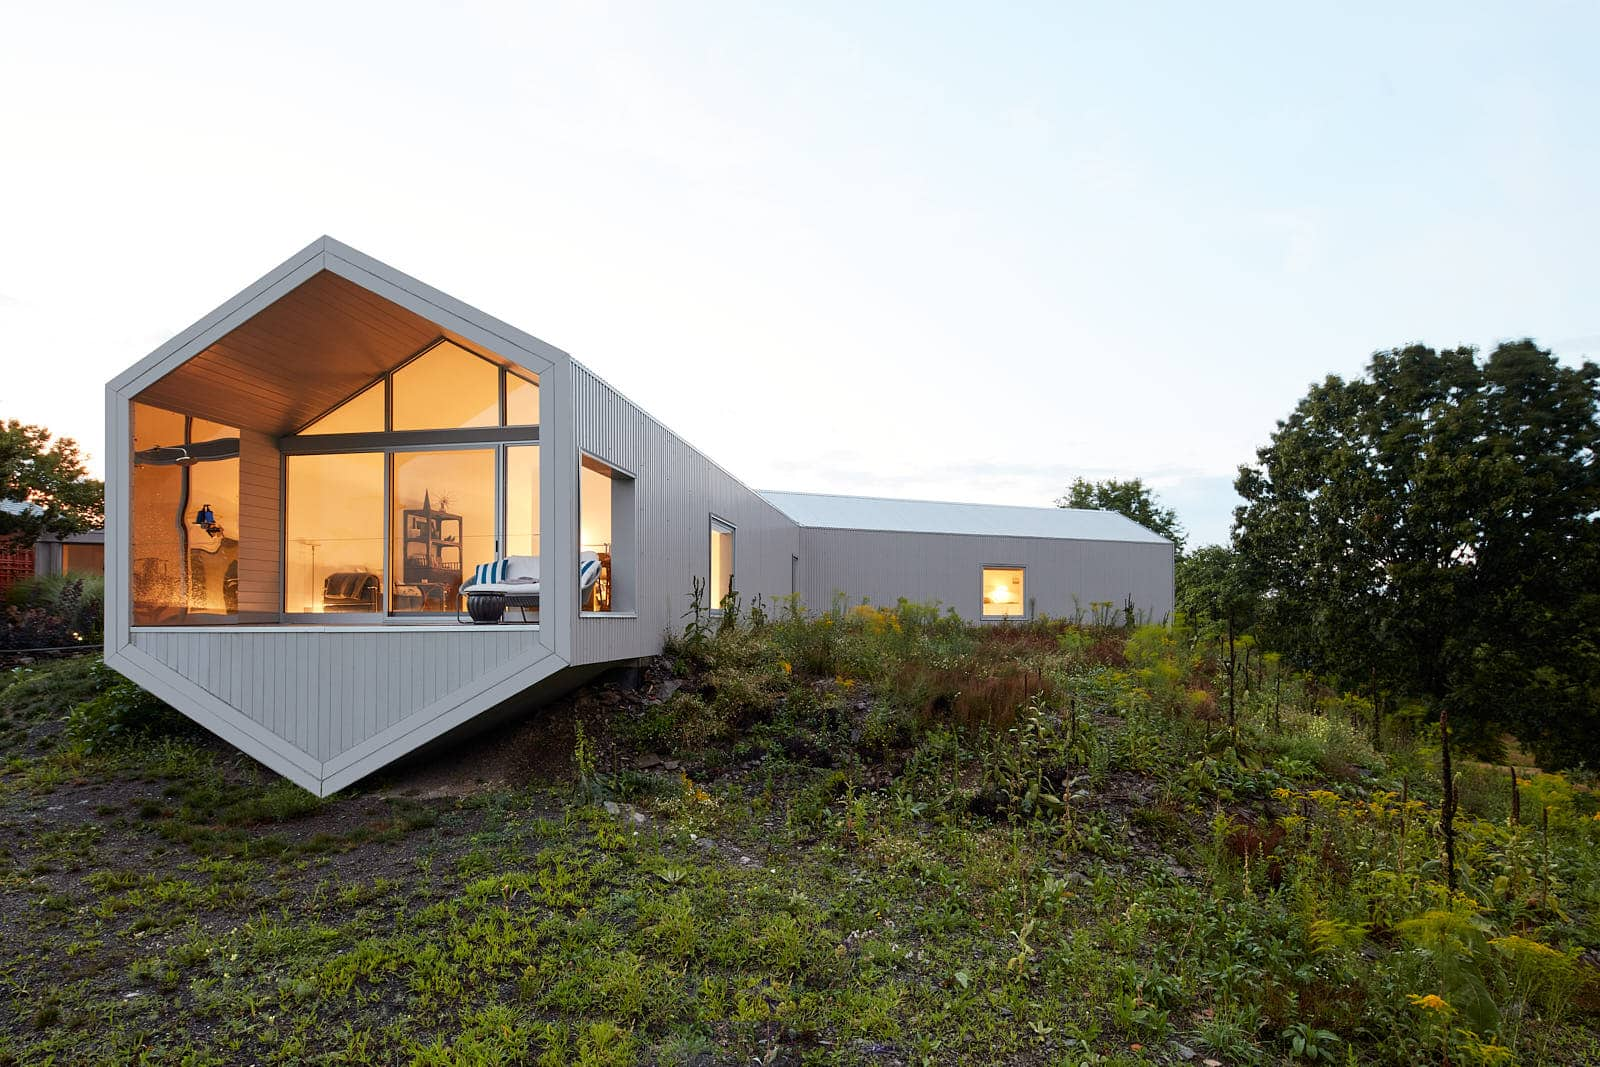 salt point | reddymade architecture and design